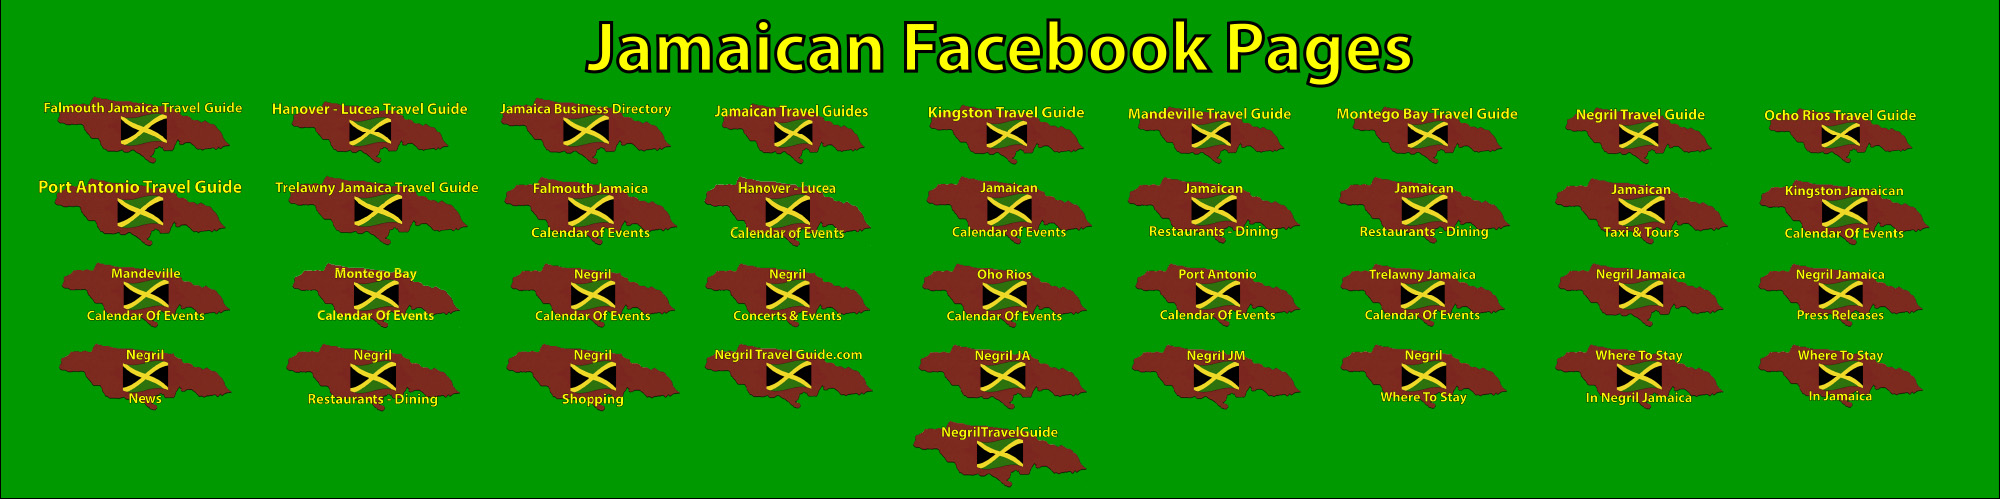 Jamaican Facebook Pages